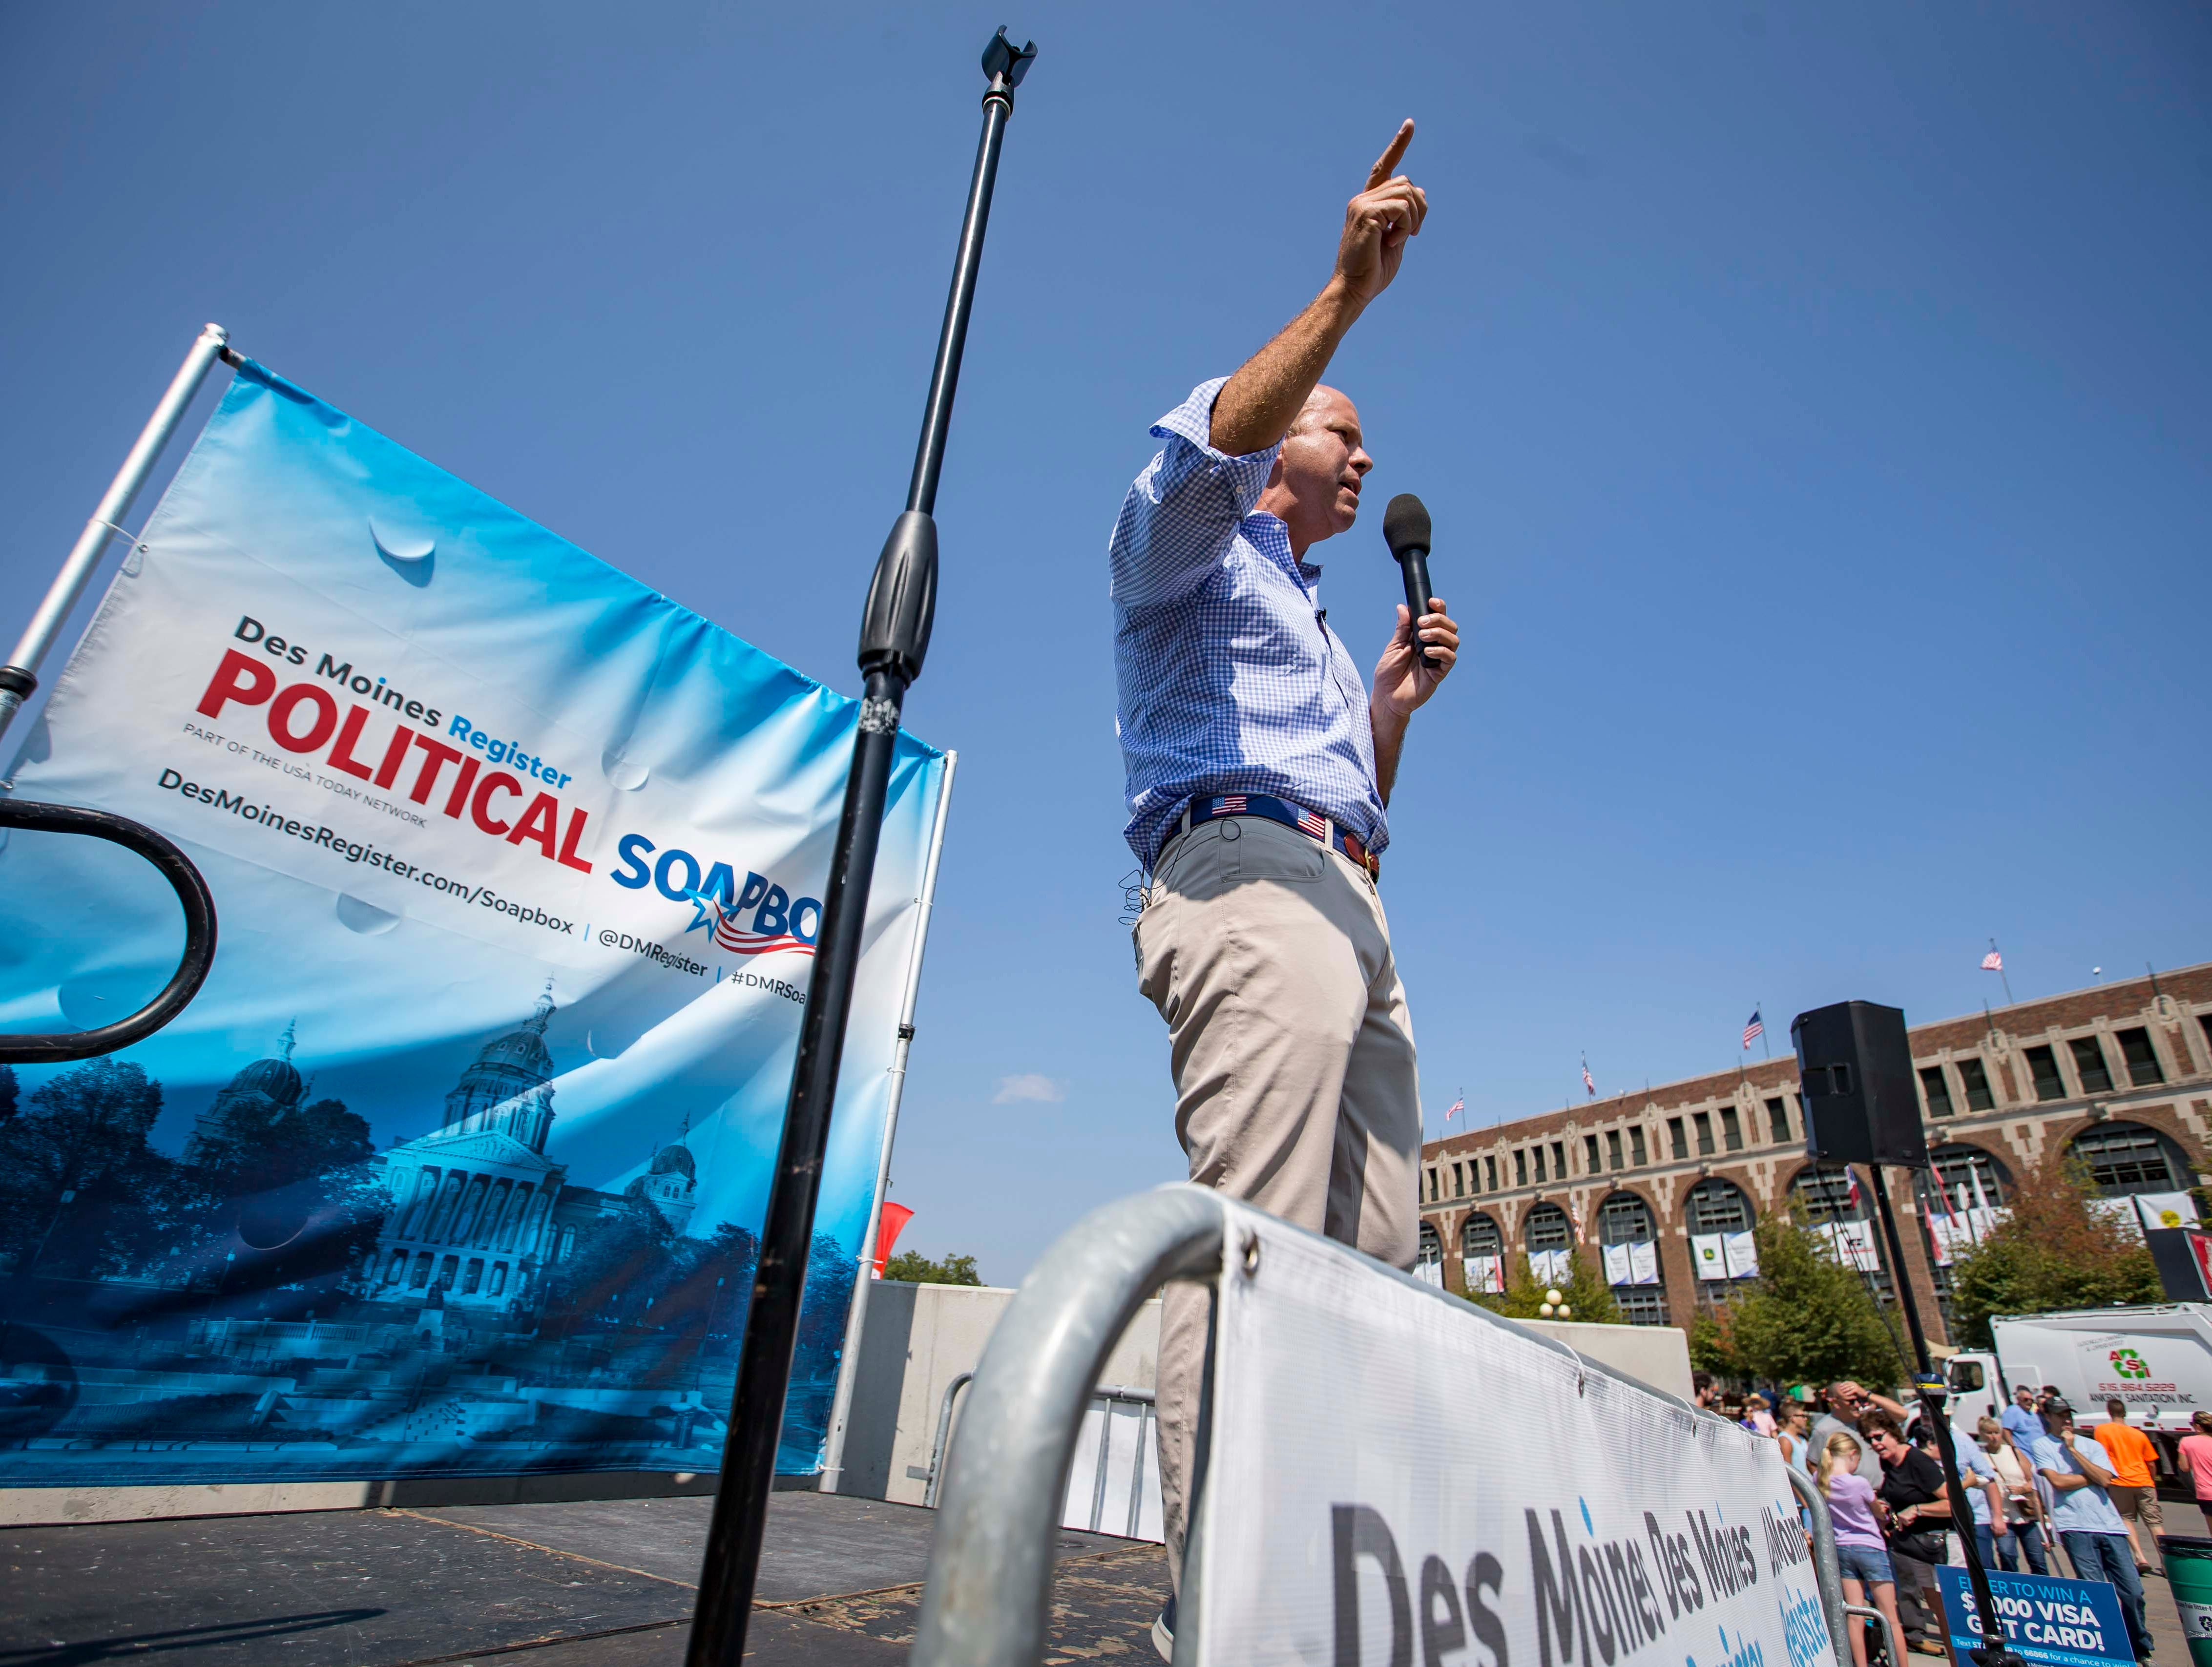 Democrat John Delaney, presidential hopeful, during the Des Moines Register Political Soapbox at the Iowa State Fair Friday, Aug. 10, 2018, in Des Moines, Iowa.